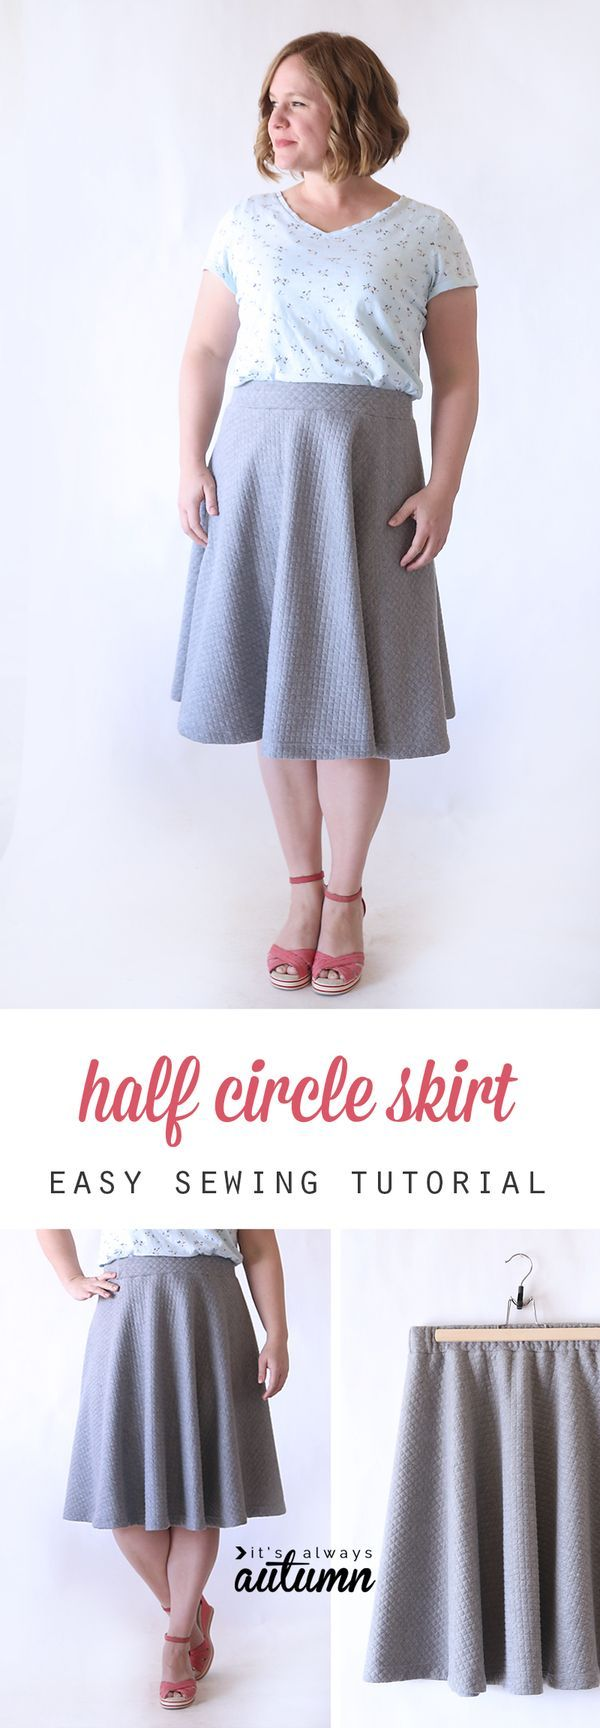 Easy Half Circle Skirt Sewing Tutorial  No Zippers, No Buttons, Just A Cute